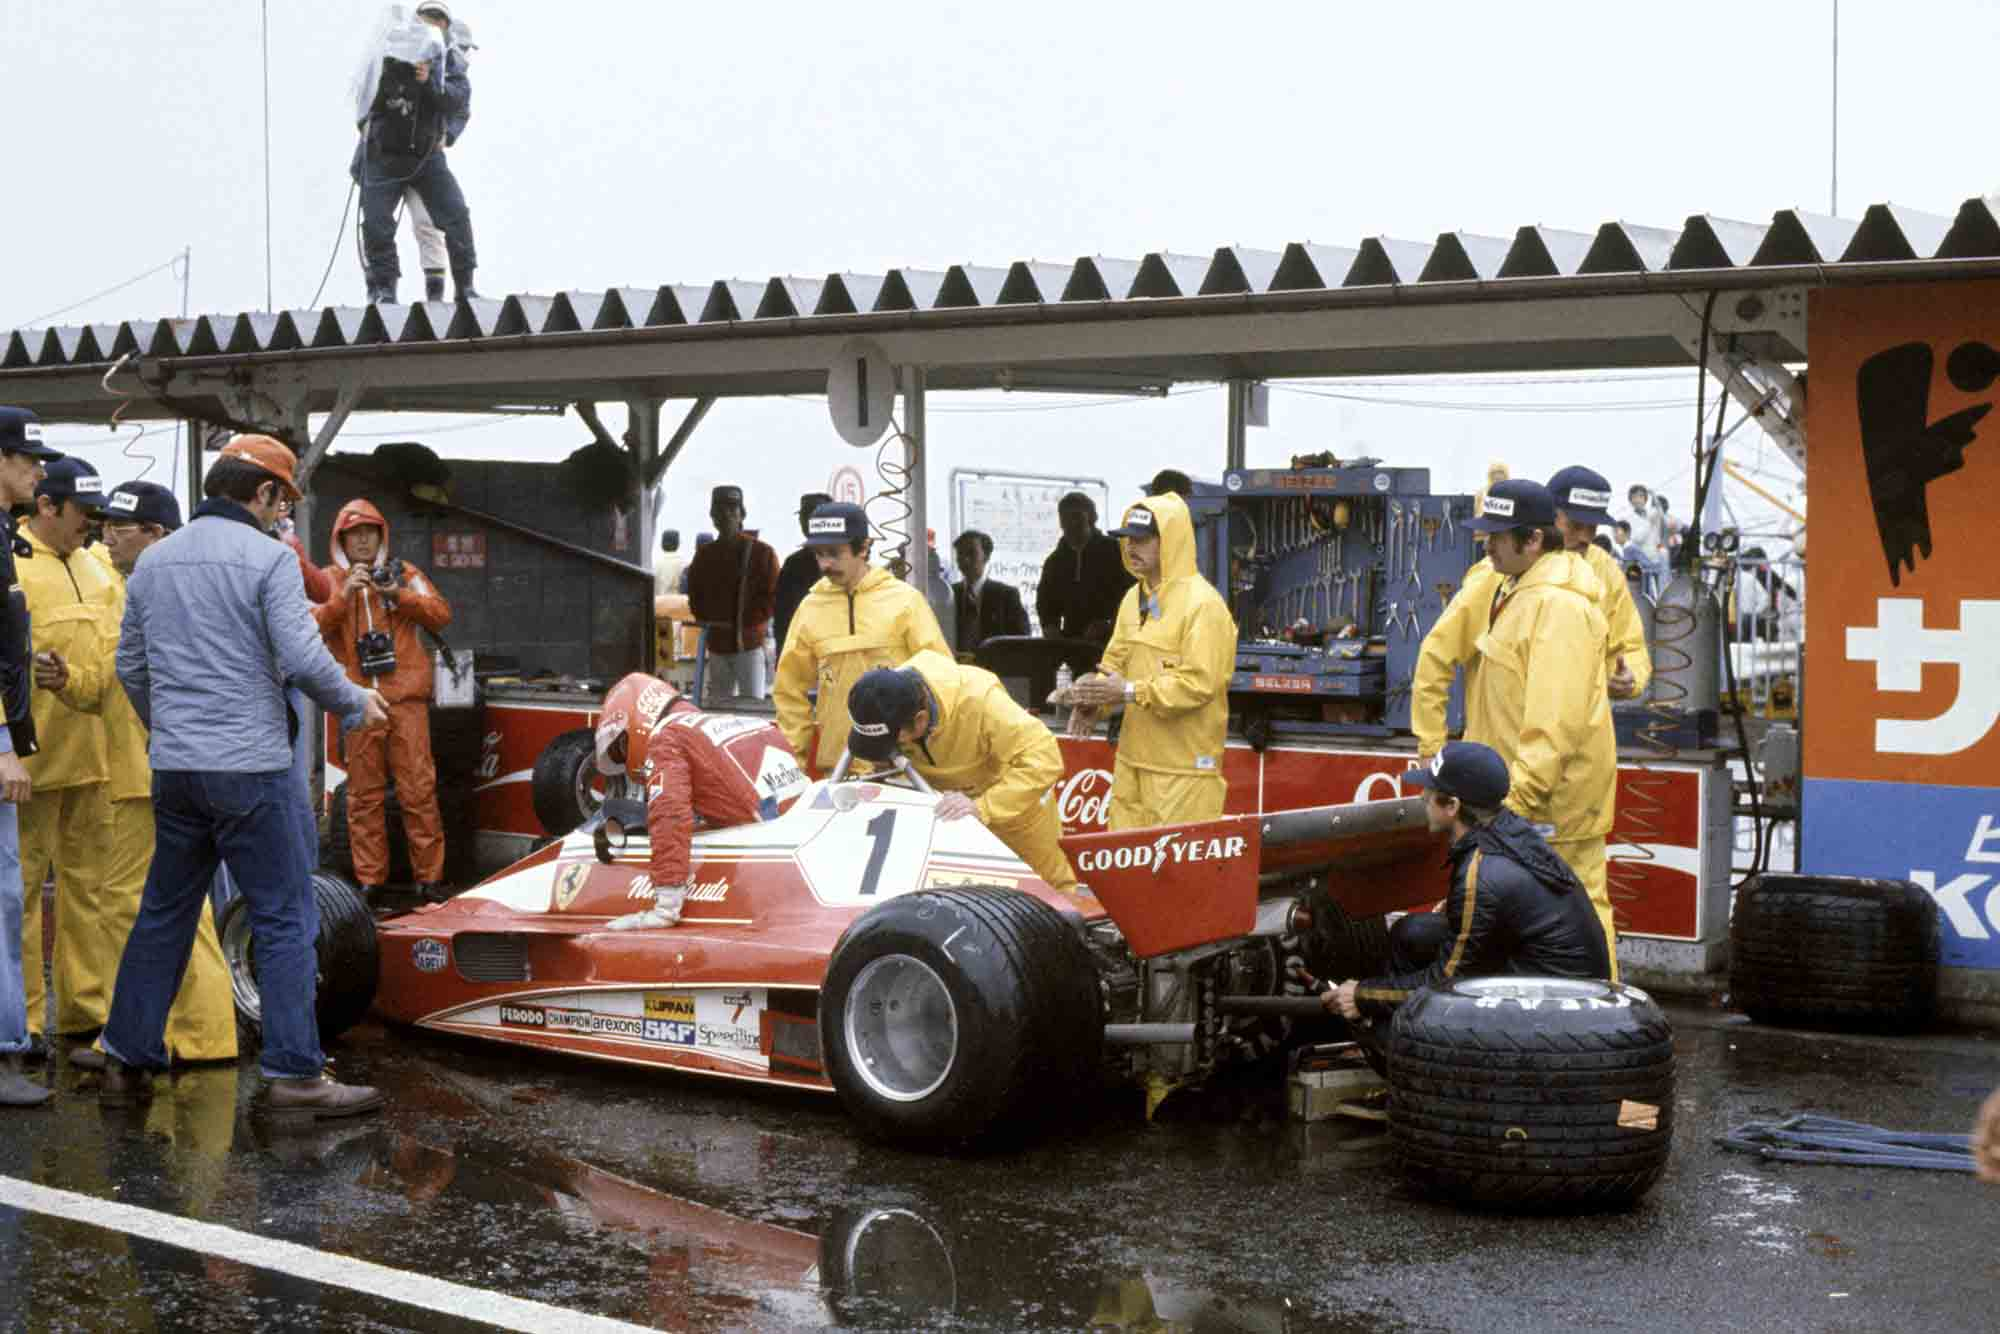 Niki Lauda climbs from his Ferrari, forfeiting the 1976 Japanese Grand Prix